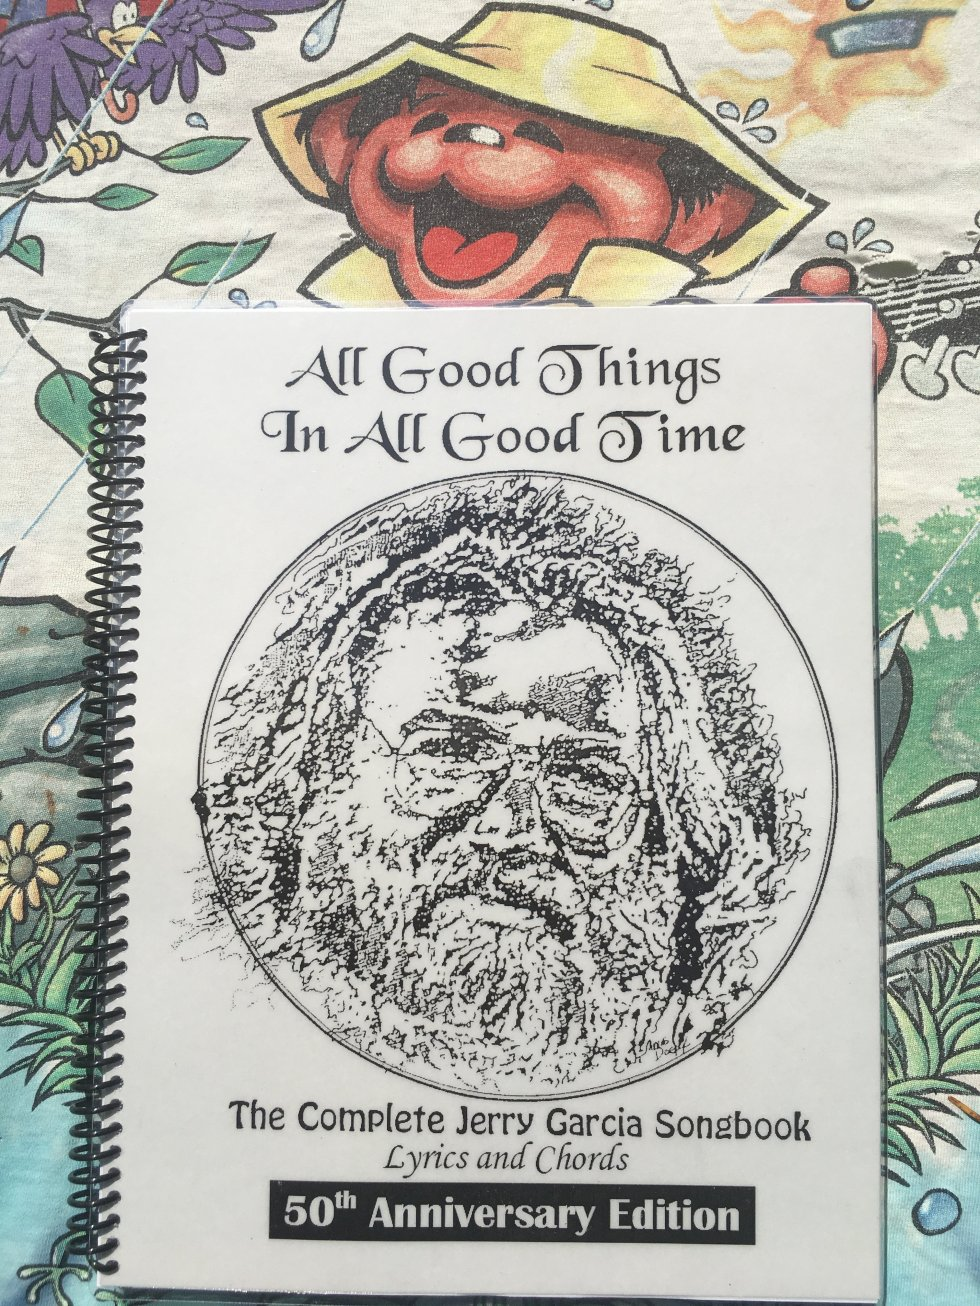 The Complete Jerry Garcia Songbook